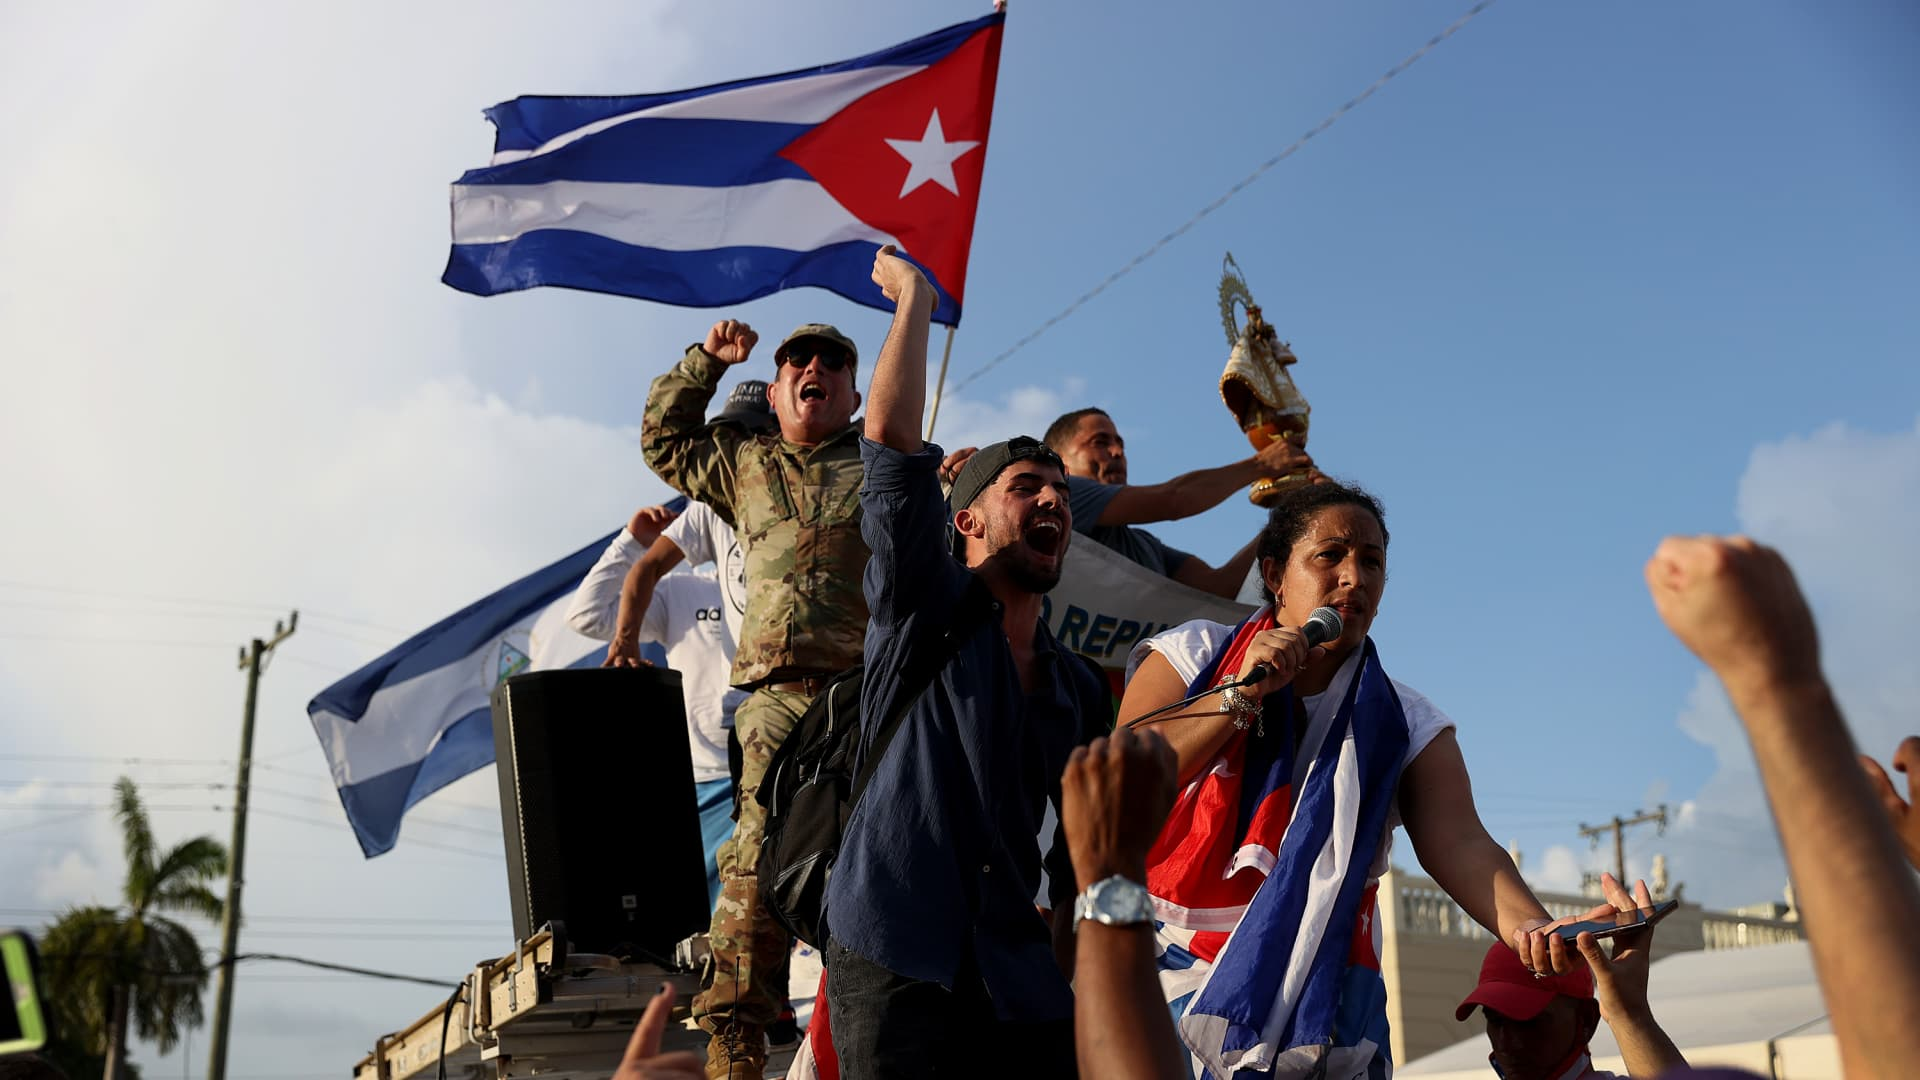 Protesters gather in front of the Versailles restaurant to show support for the people in Cuba who have taken to the streets there to protest on July 11, 2021 in Miami, Florida.